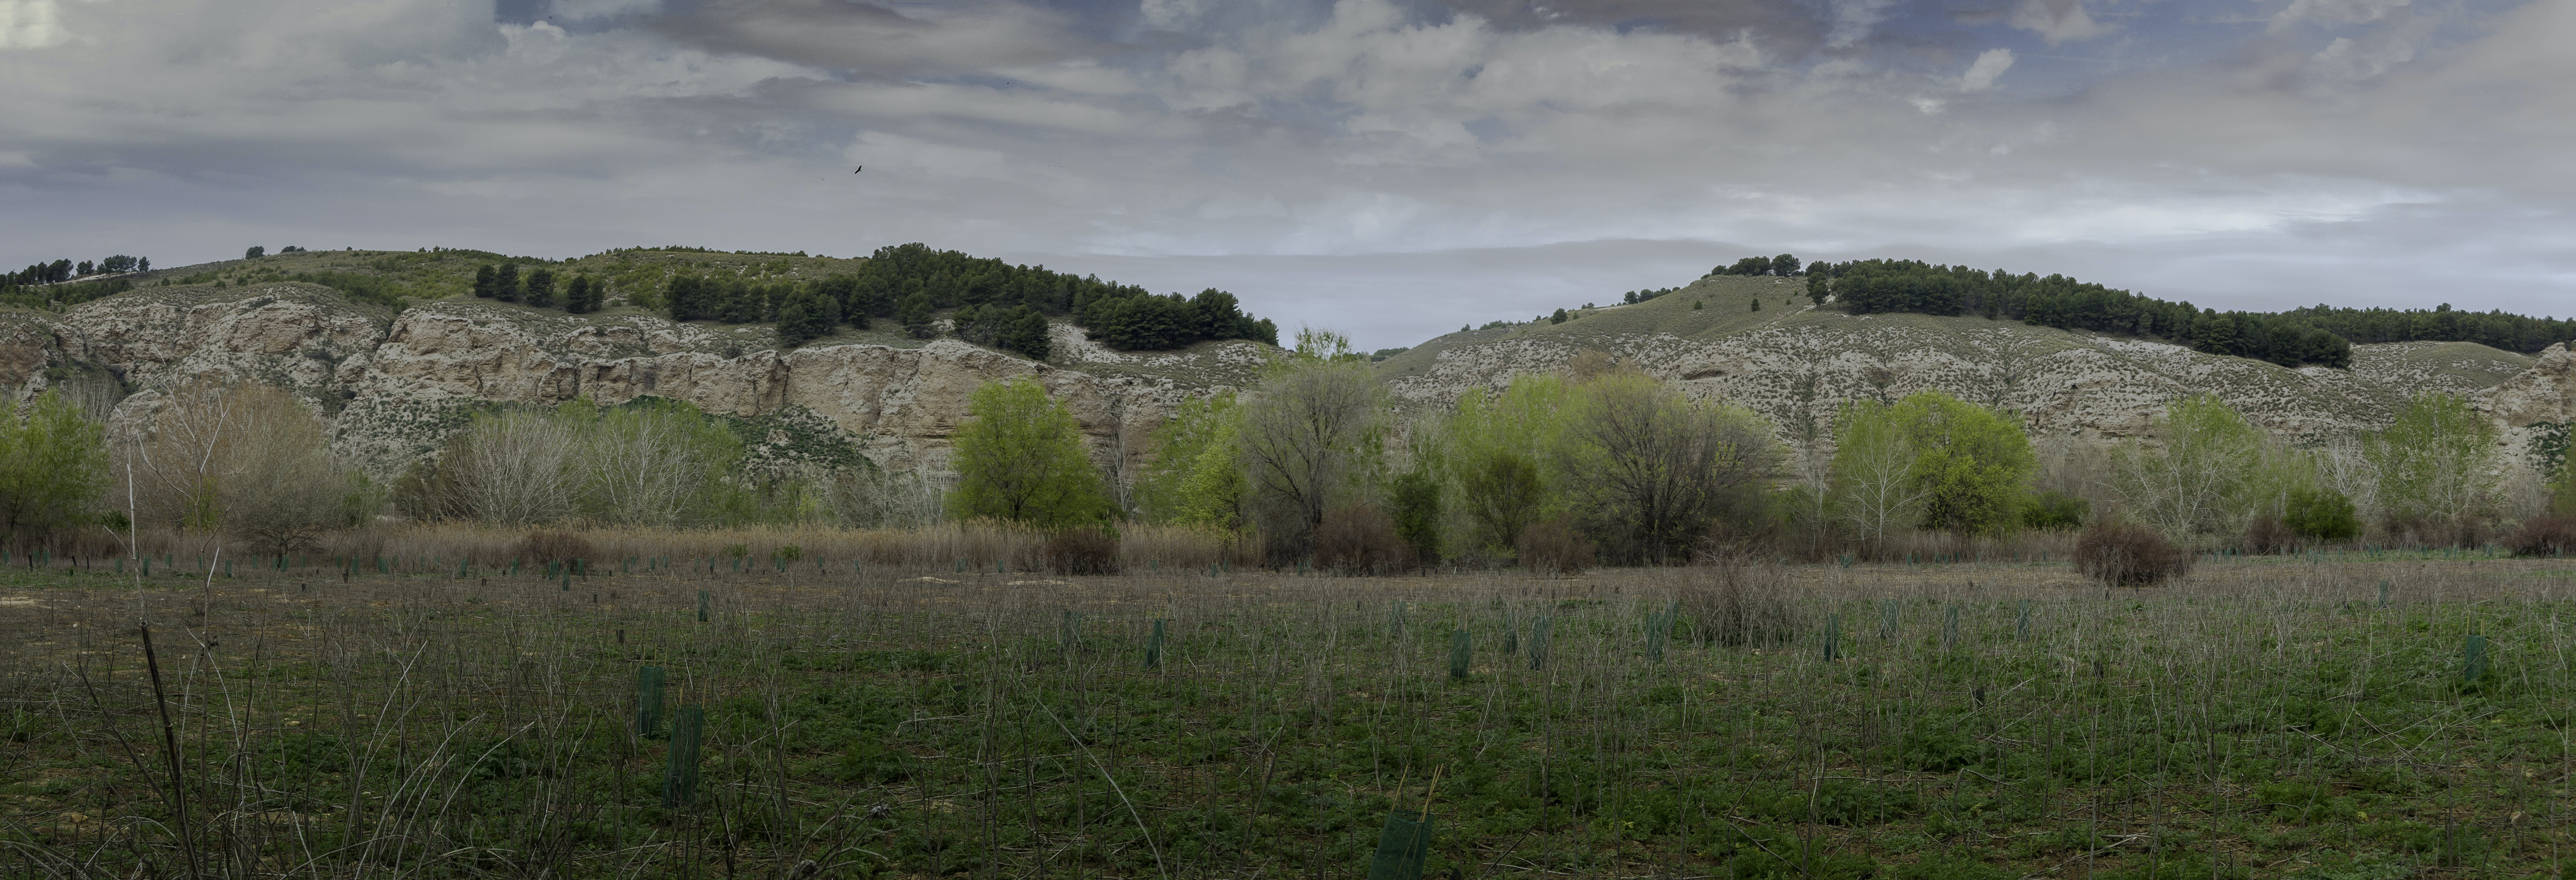 Free stock photo of the other side of Manzanares river